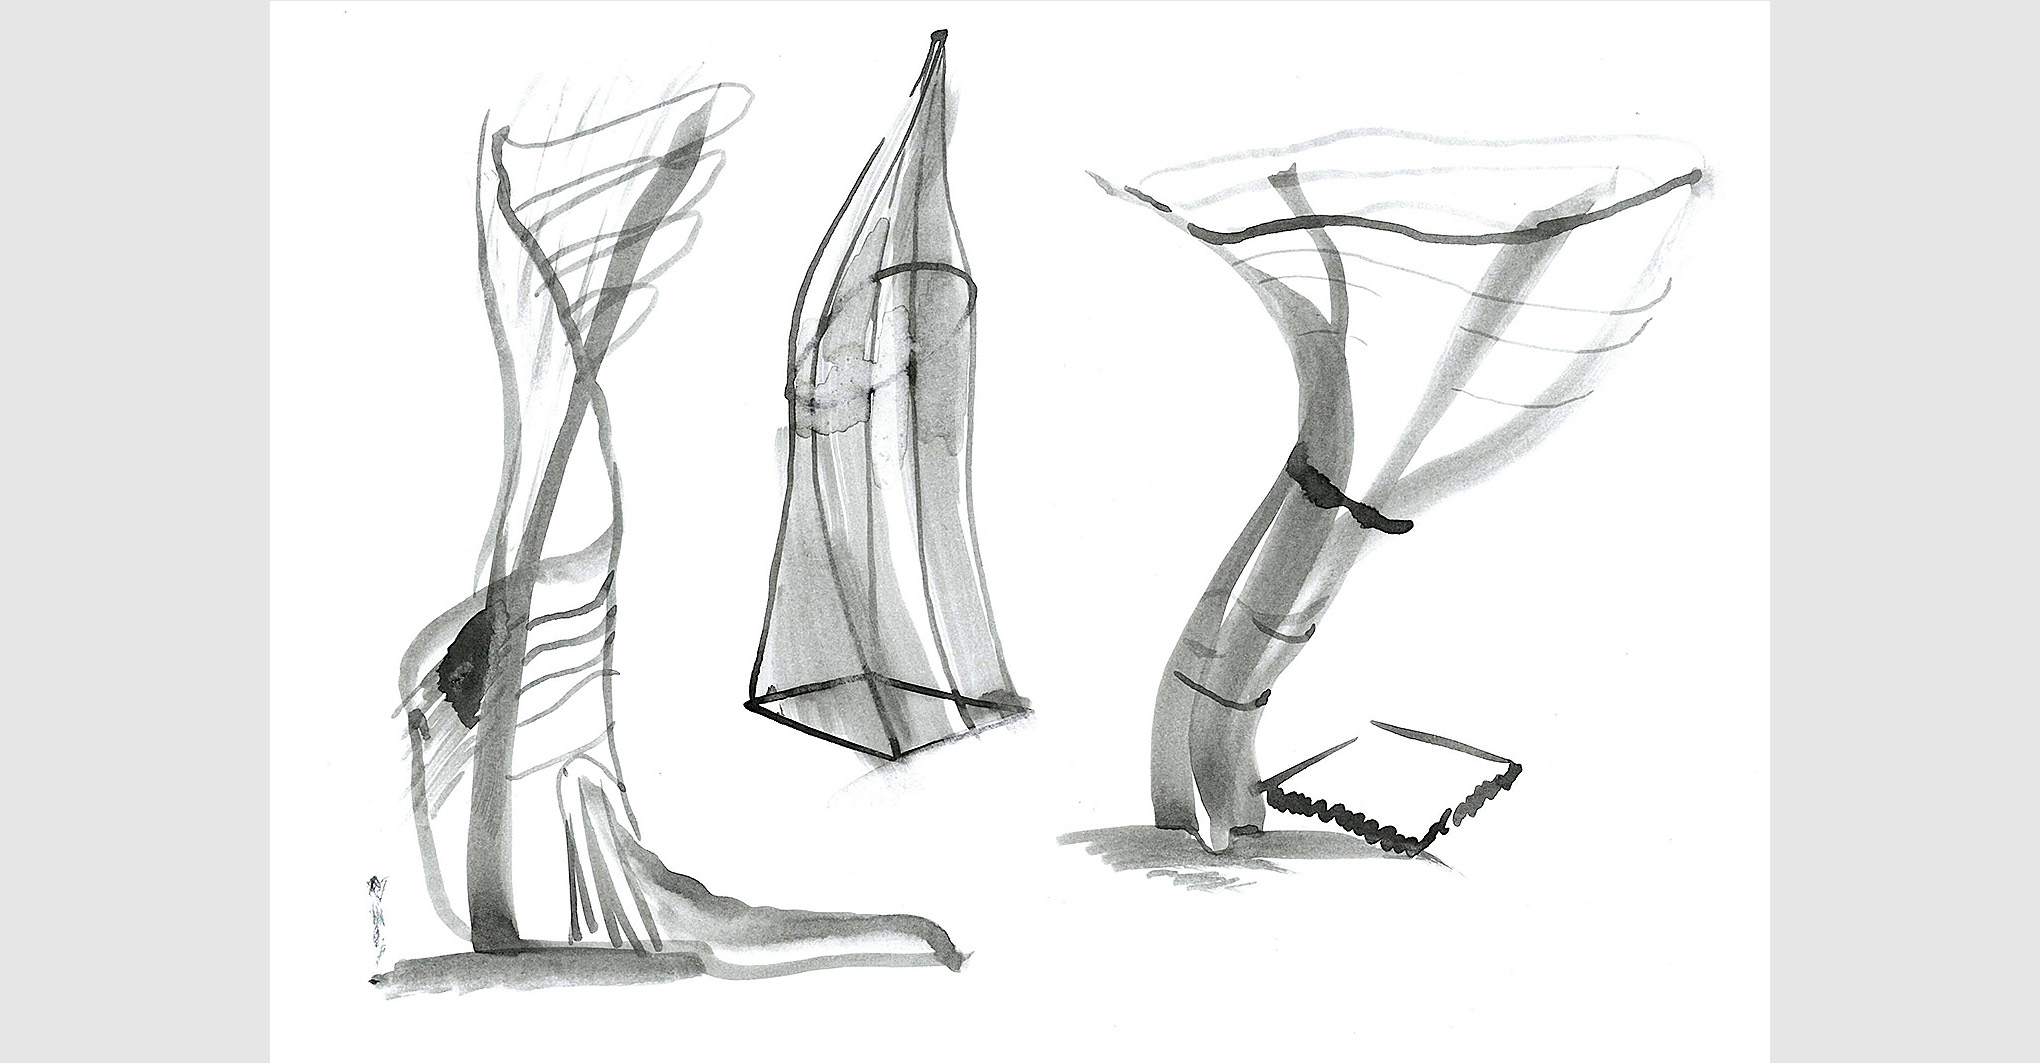 Imagined_forms_assembly1a_W1500px_72dpi_Form_3_Composite_1.jpg